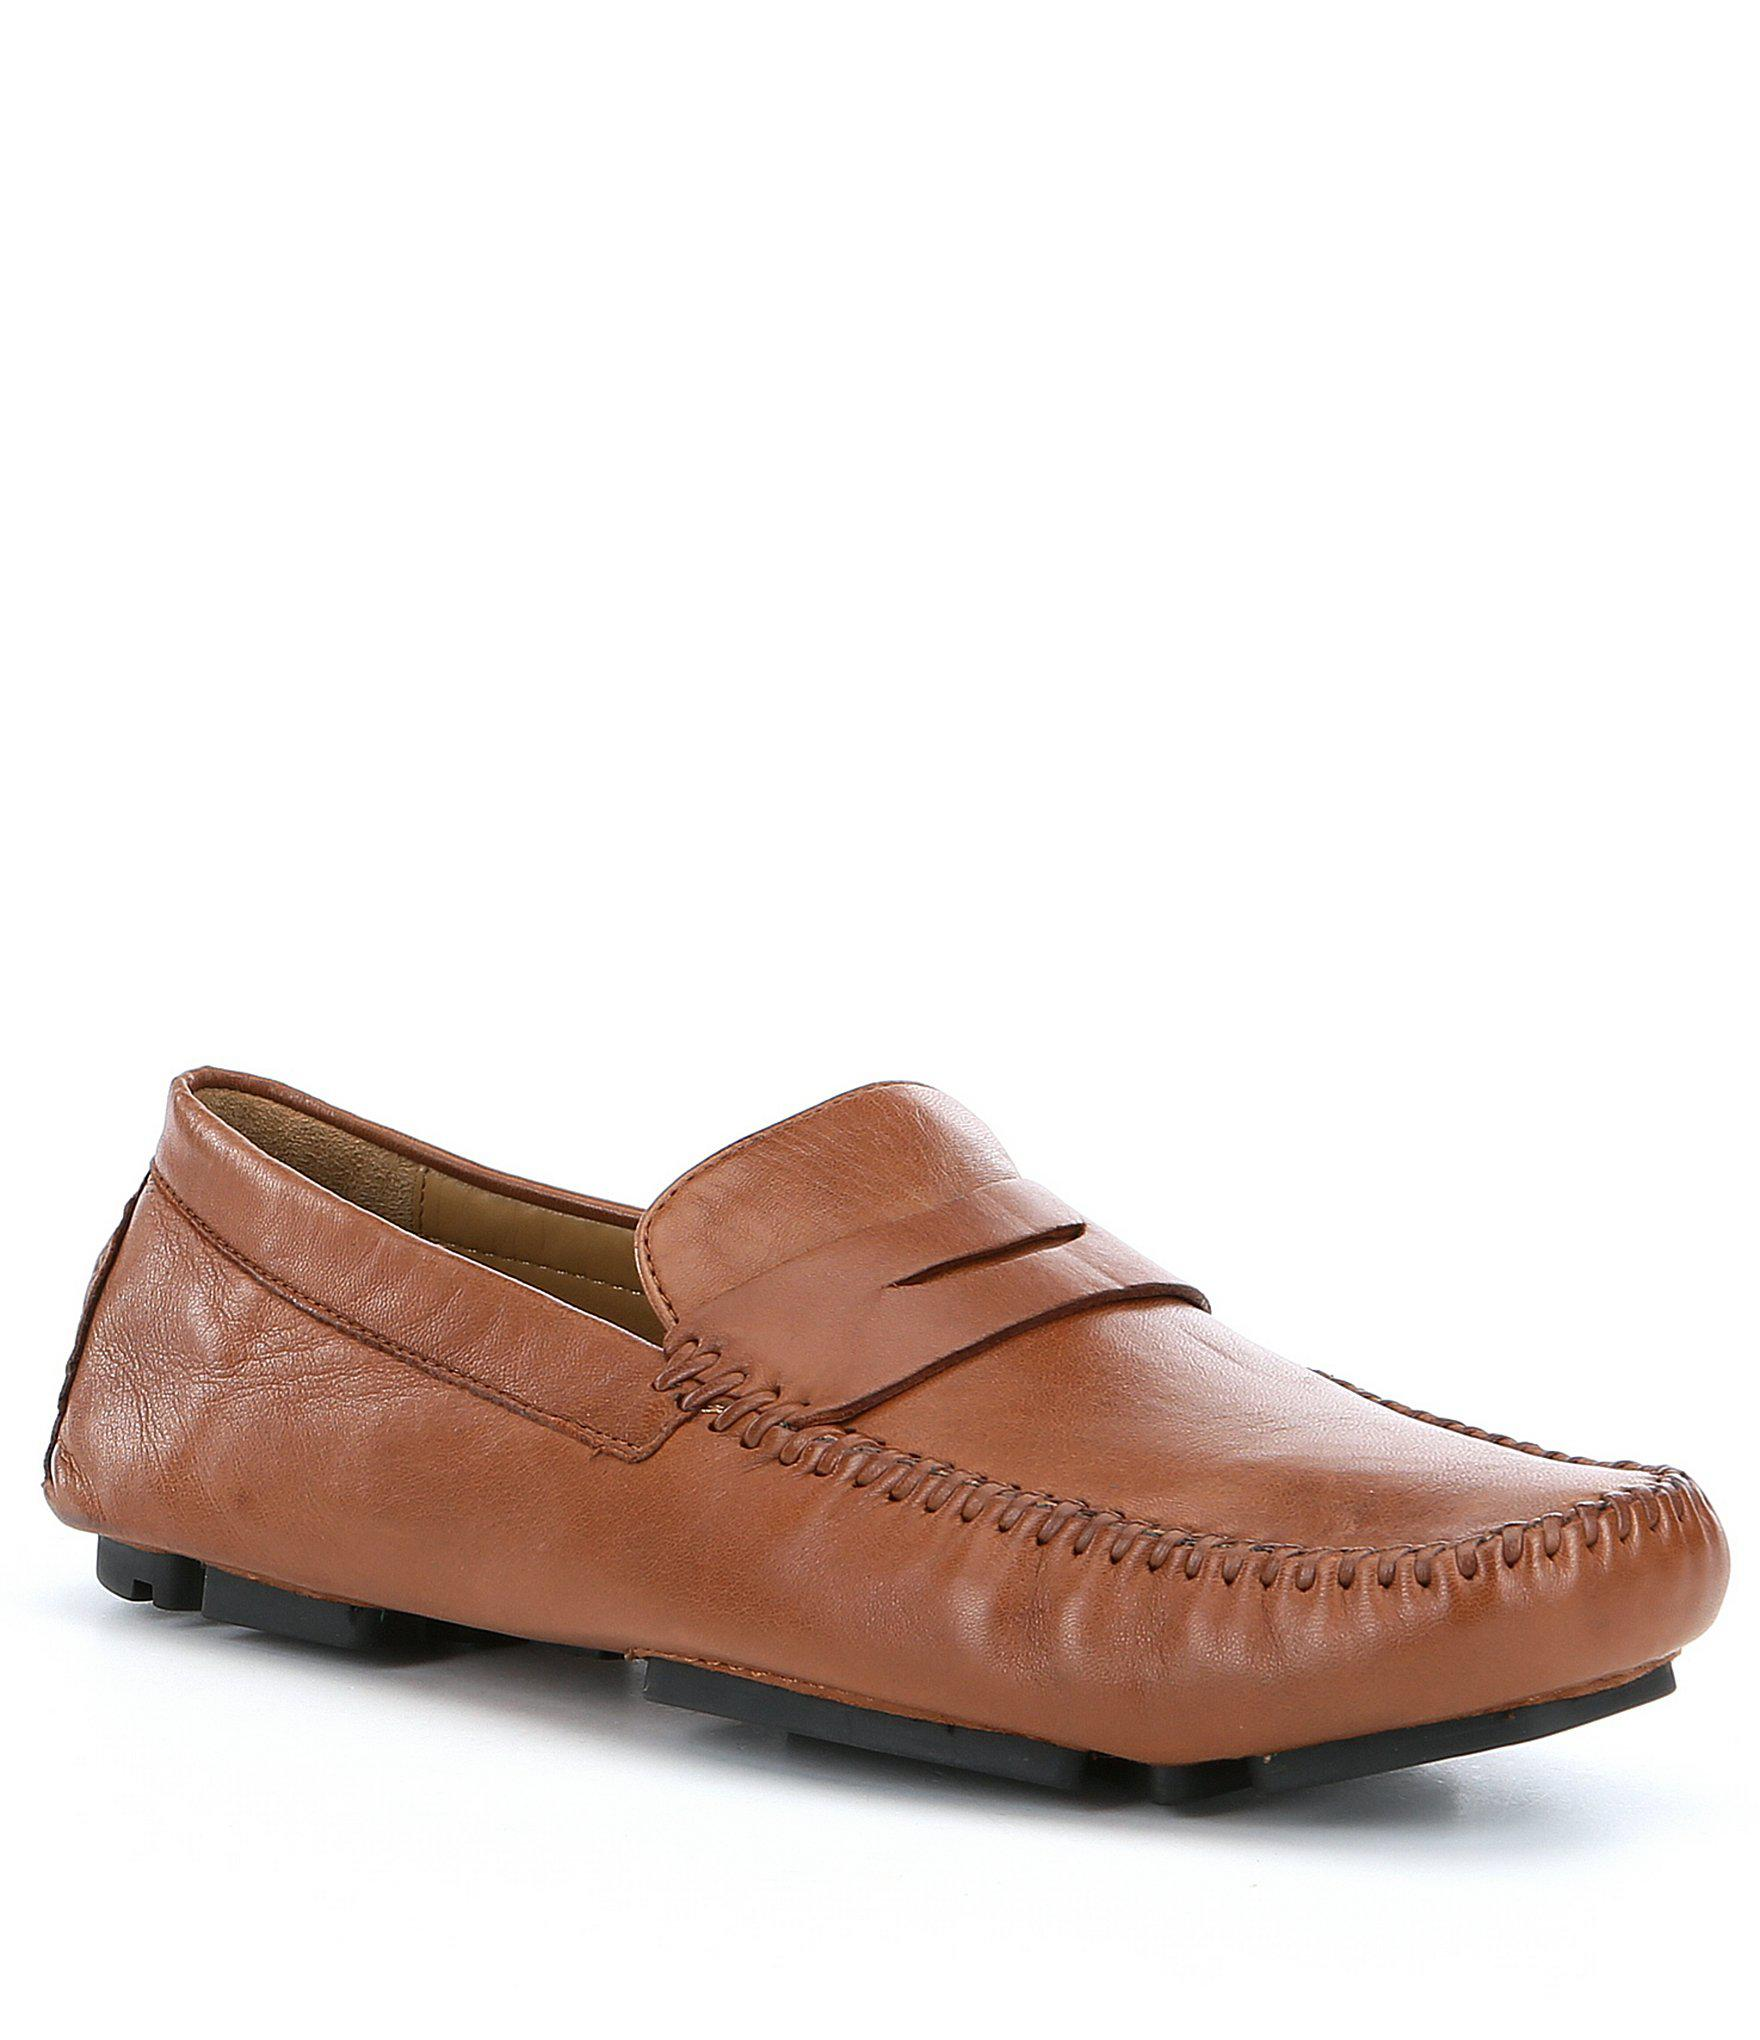 40d3e533abd Lyst - Robert Zur Men ́s Sven Leather Penny Loafers in Brown for Men